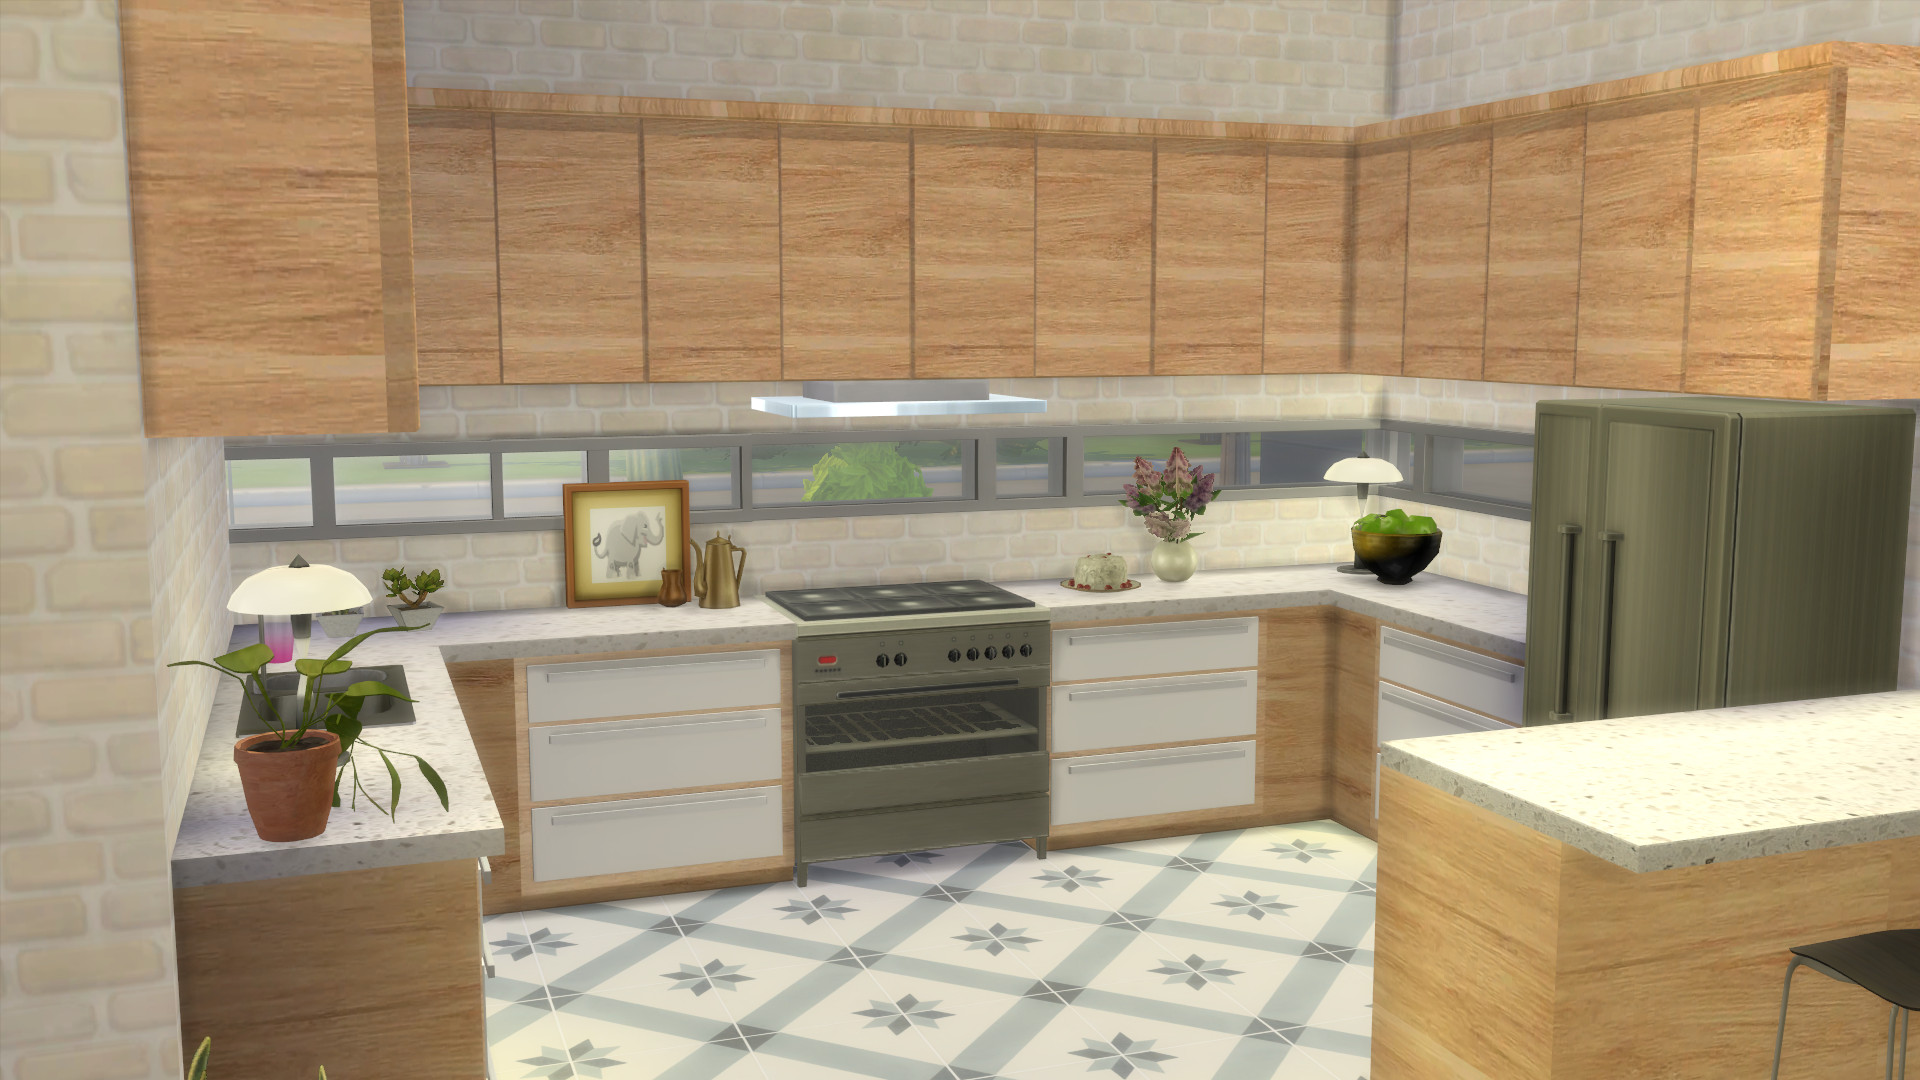 Mod The Sims Kitchen From Perfect Patio Stuff No